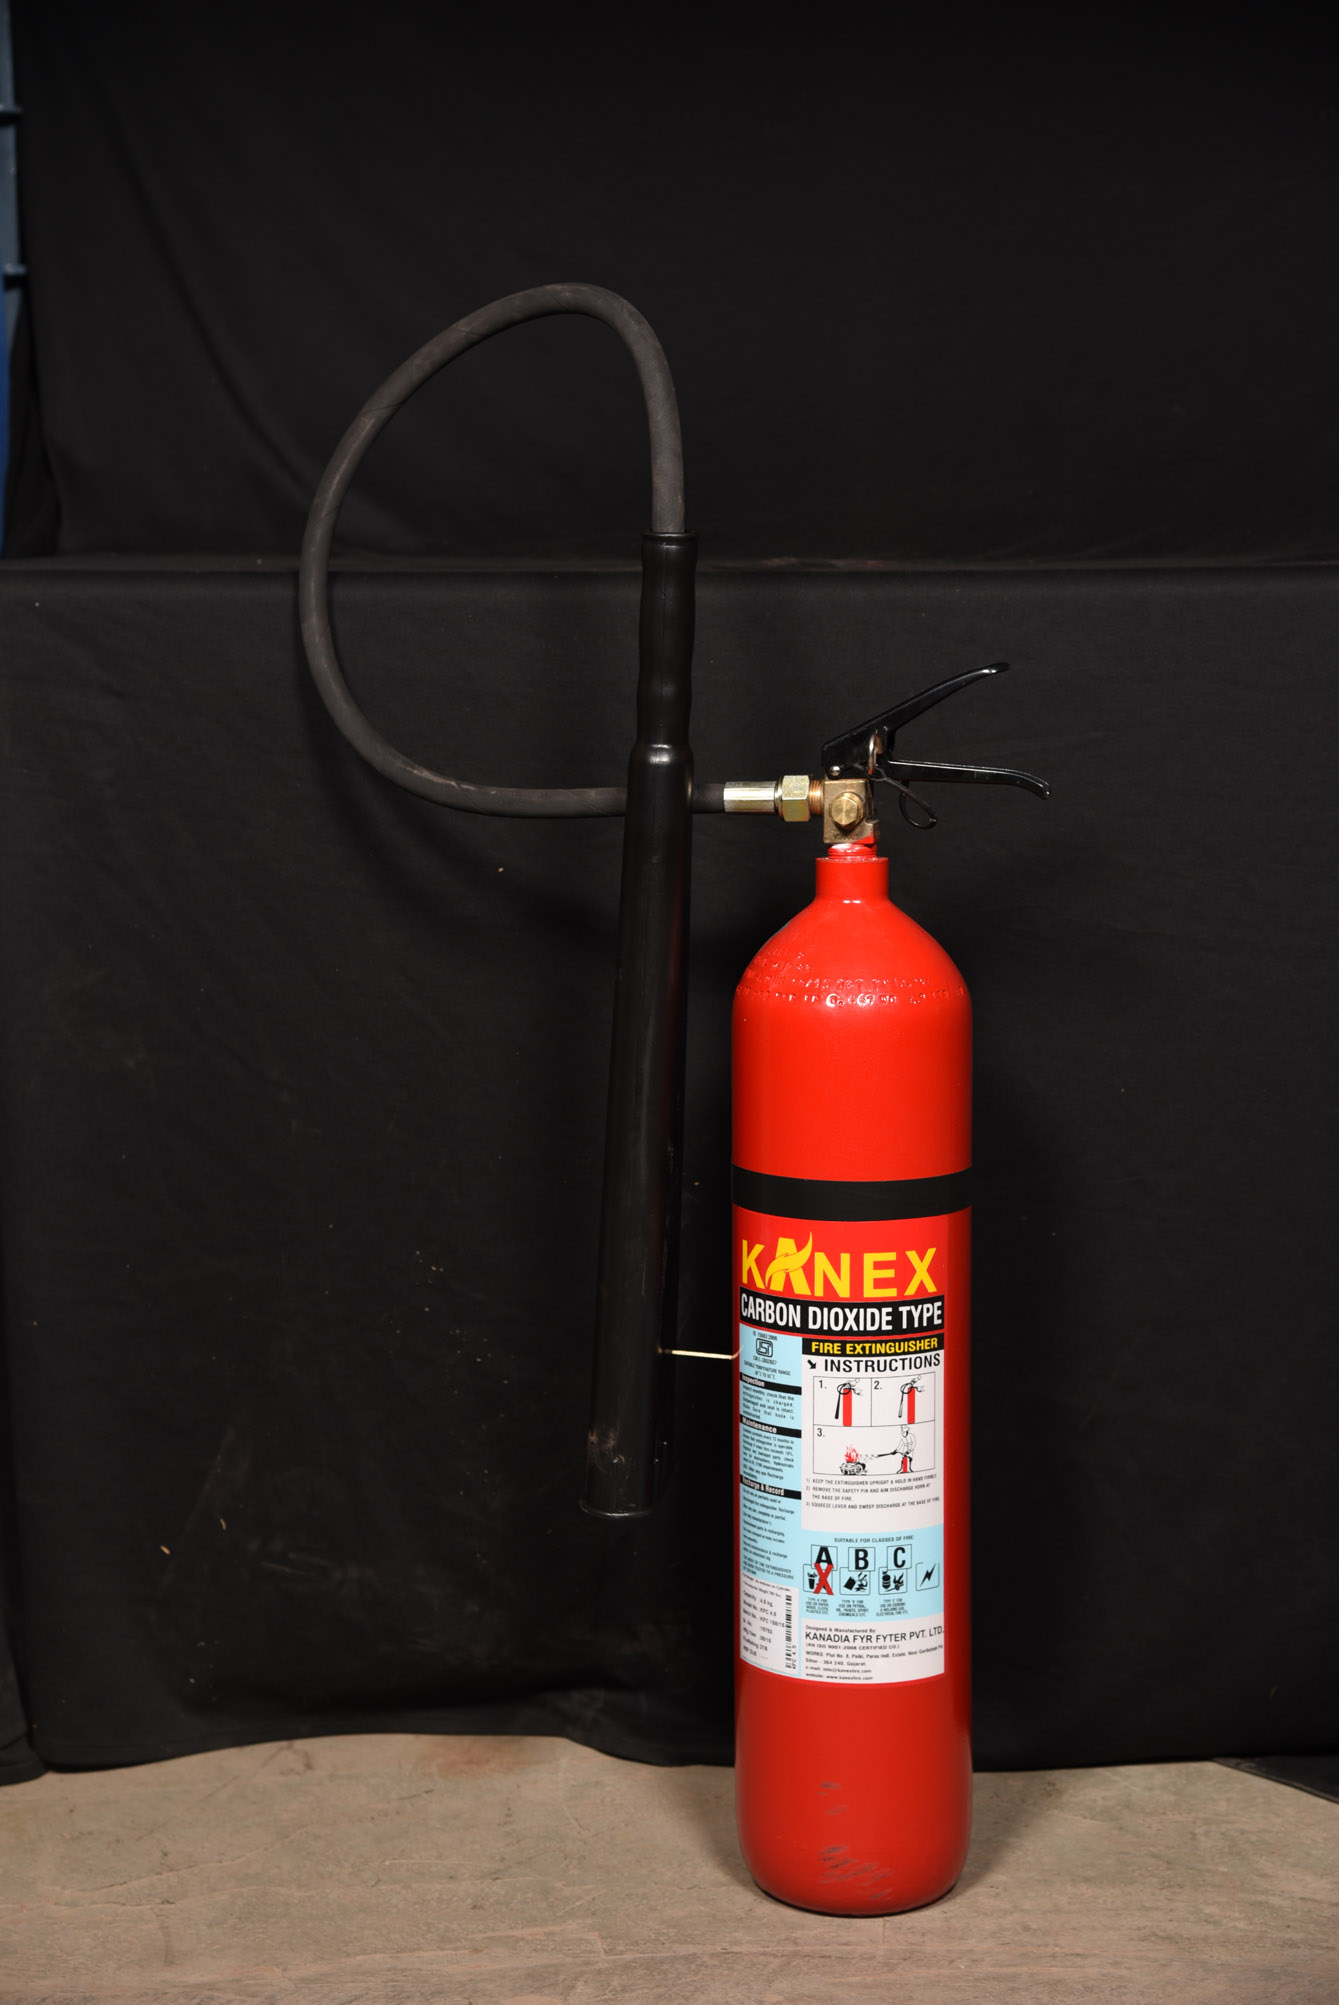 CARBON DIOXIDE - C02 GAS BASED FIRE EXTINGUISHERS